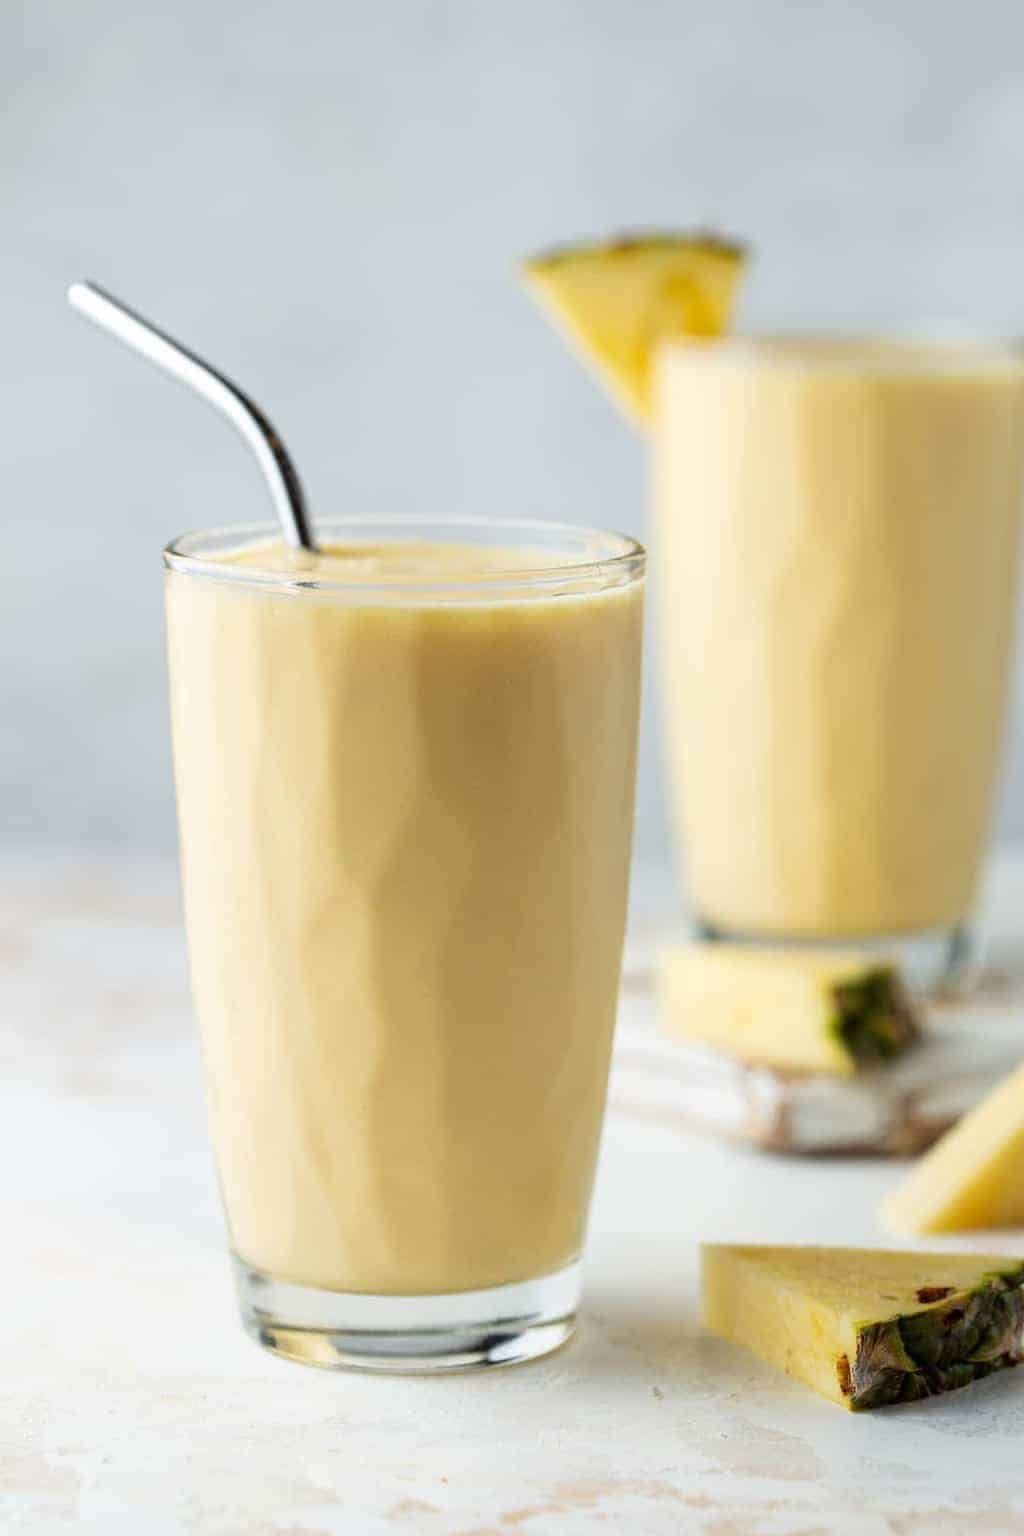 Two tall glasses filled with Mango Pineapple Smoothies and garnished with fresh pineapple wedges.